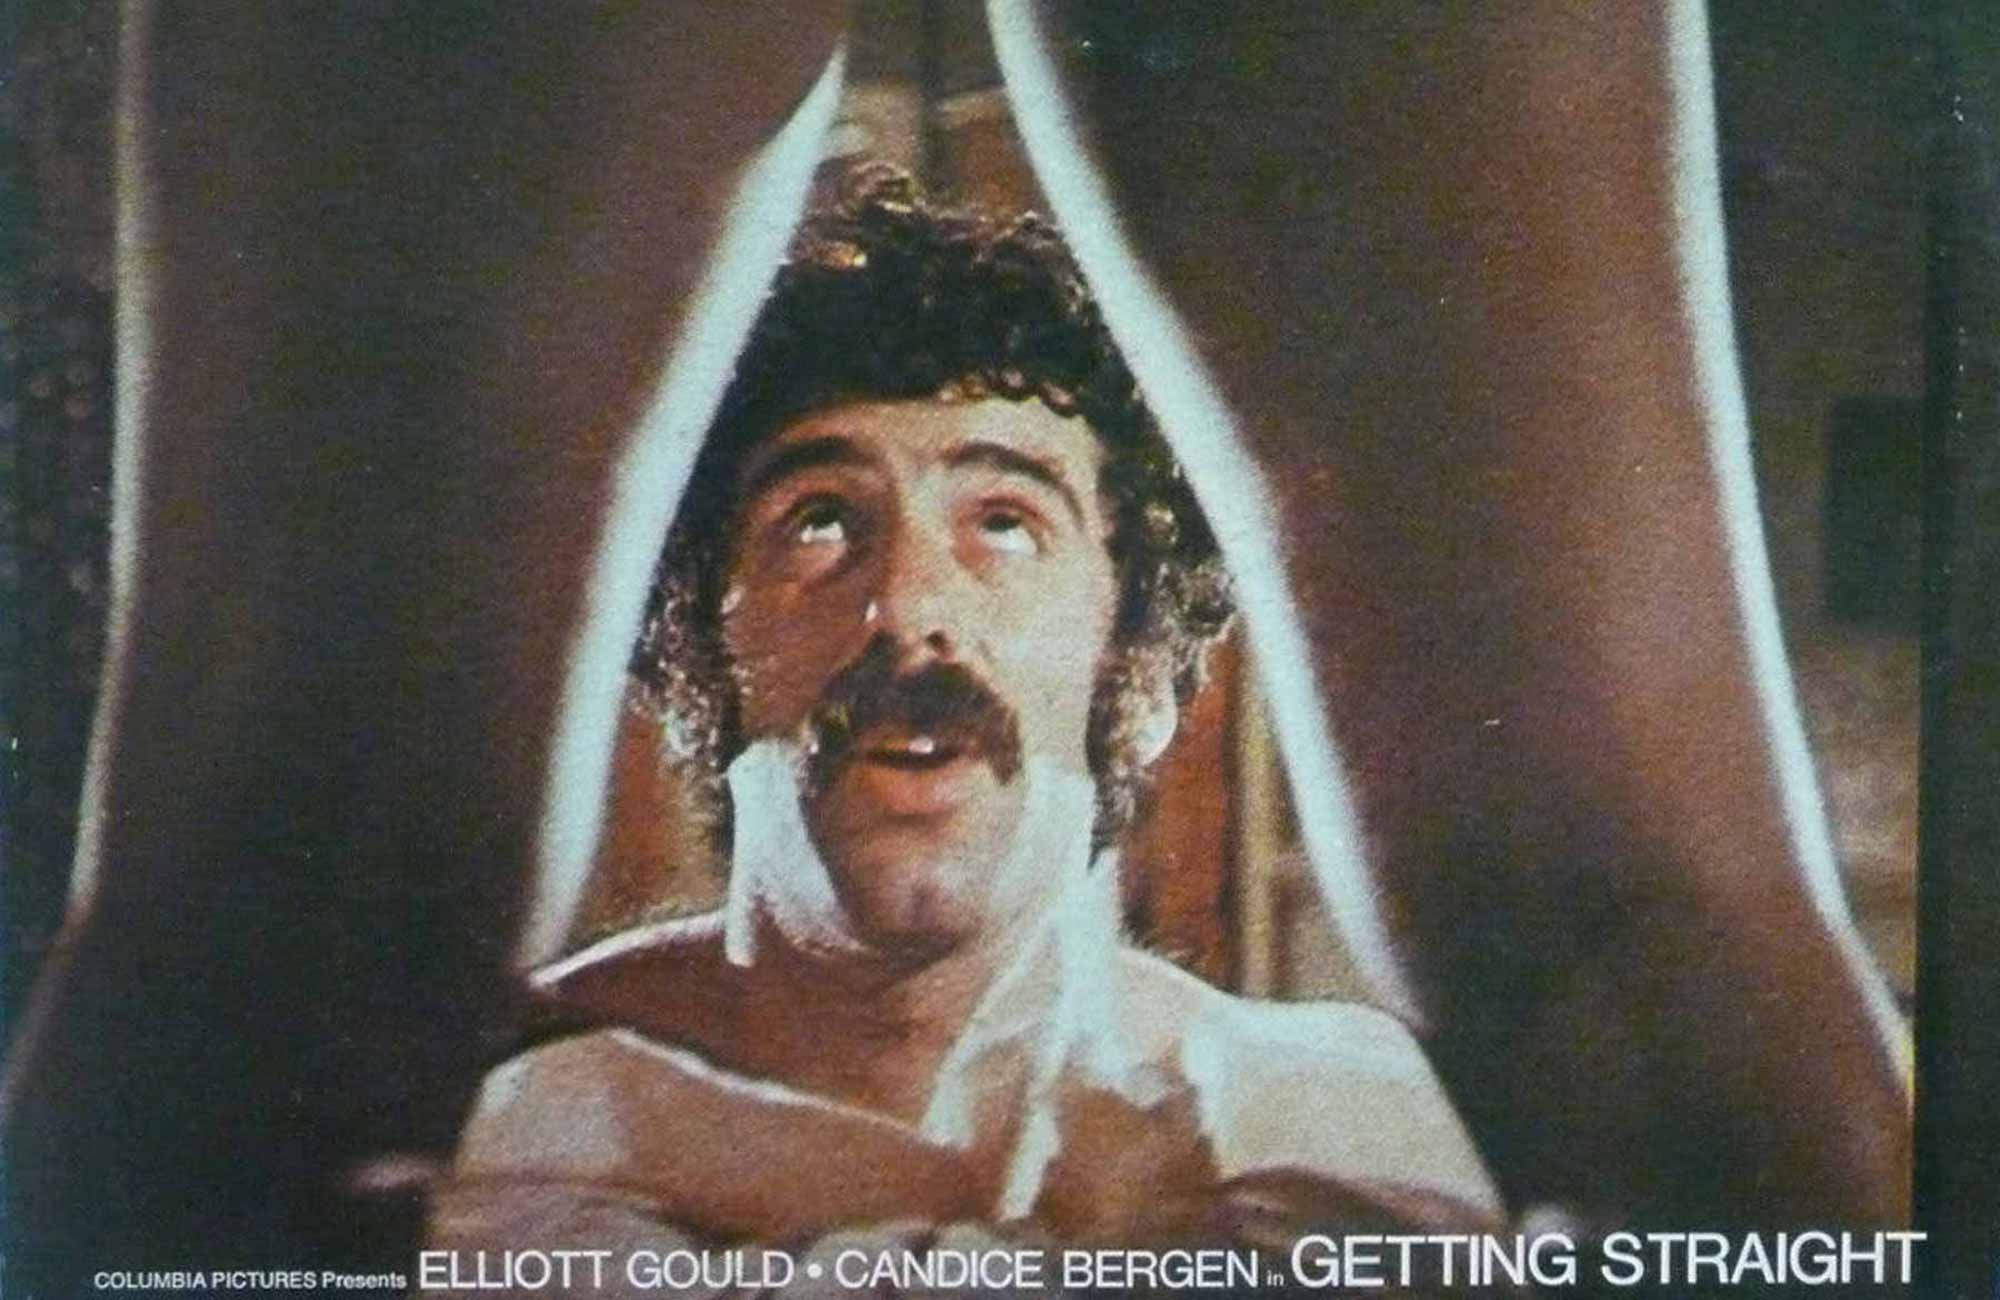 Getting Straight with Richard Rush and Elliott Gould